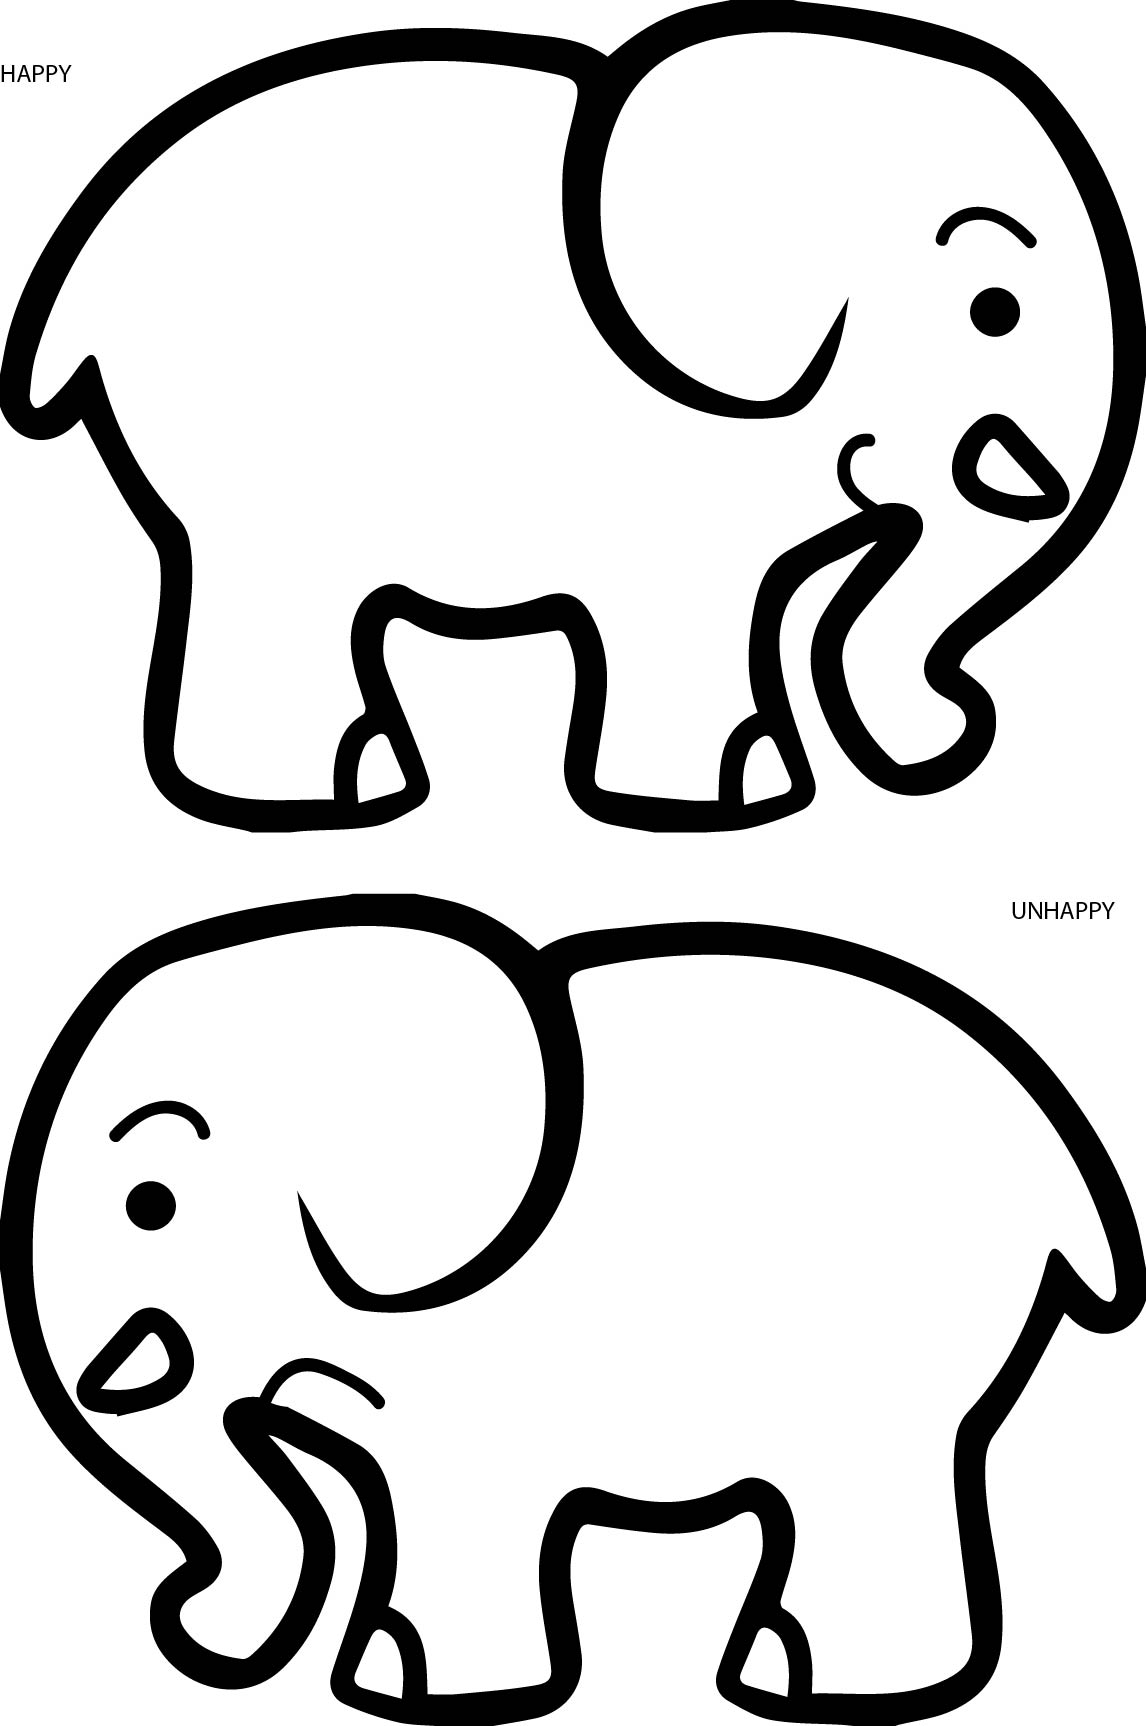 elephant coloring adult coloring sheets elephant mandalas diy pages to elephant coloring